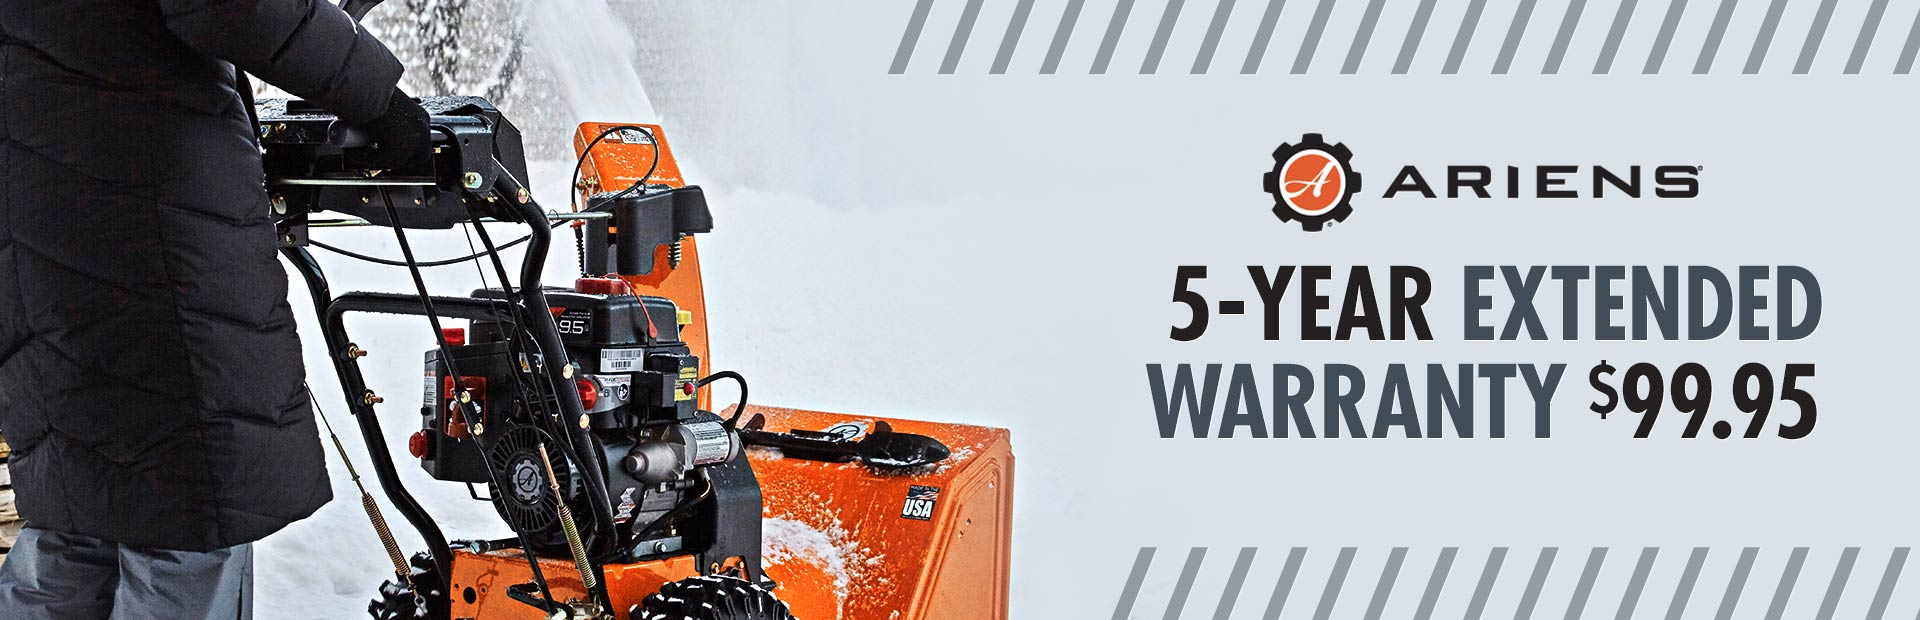 Ariens: 5-Year Extended Warranty $99.95